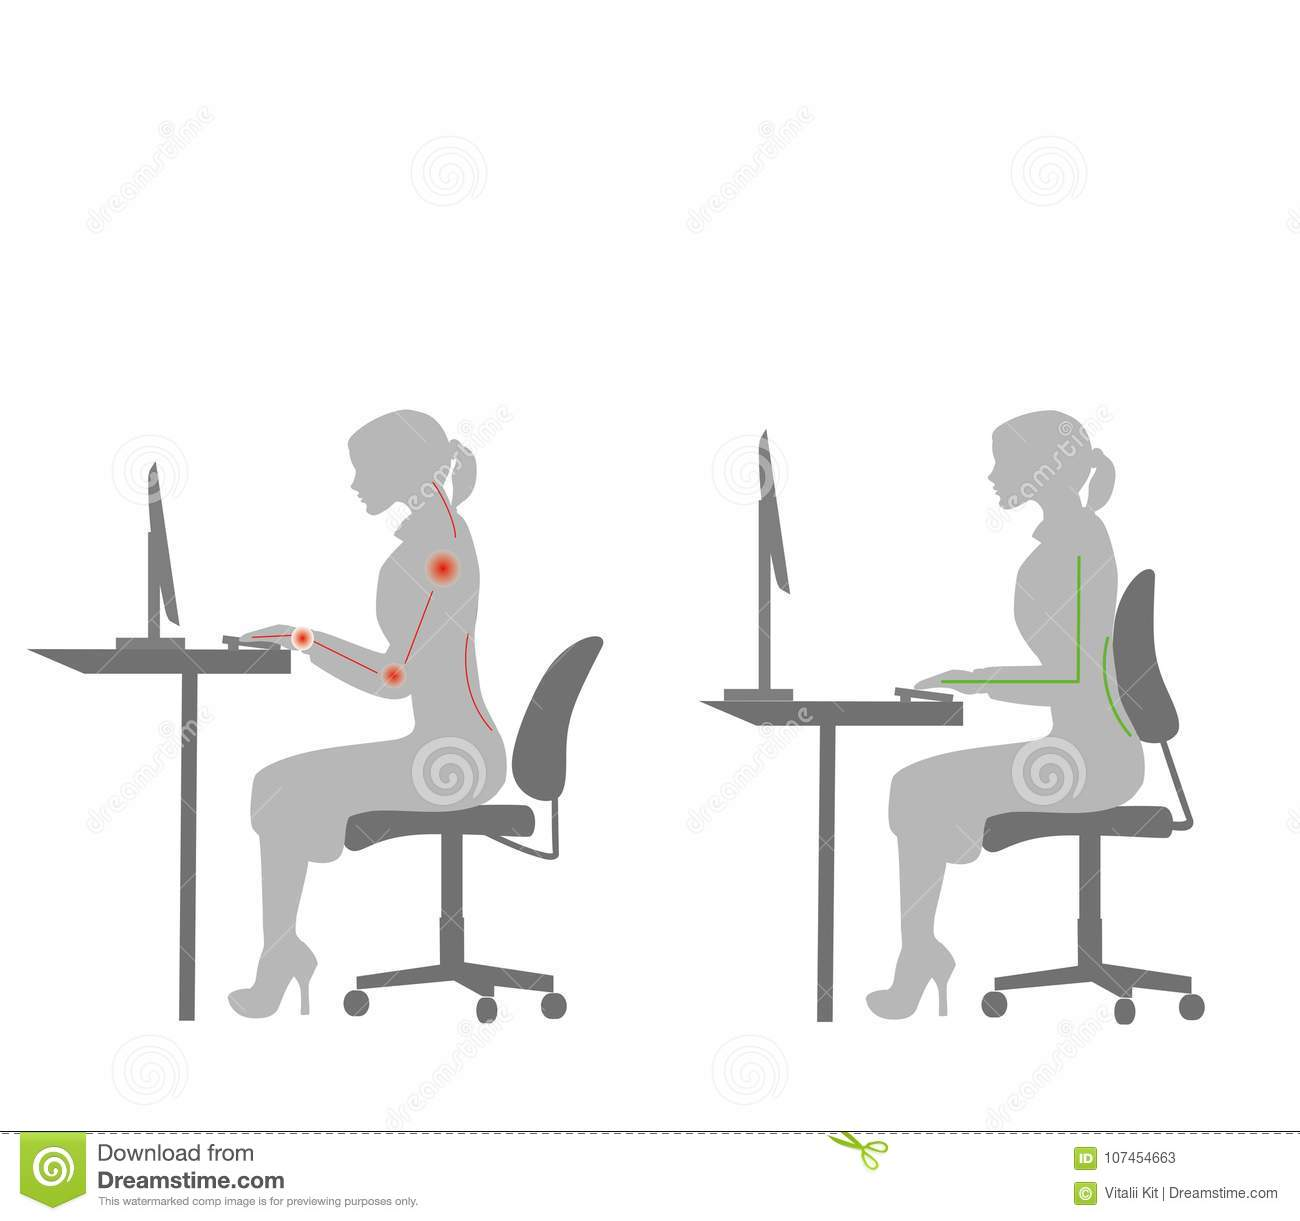 better posture office chair spandex covers for sale cheap correct sitting at desk ergonomics advices workers how to sit